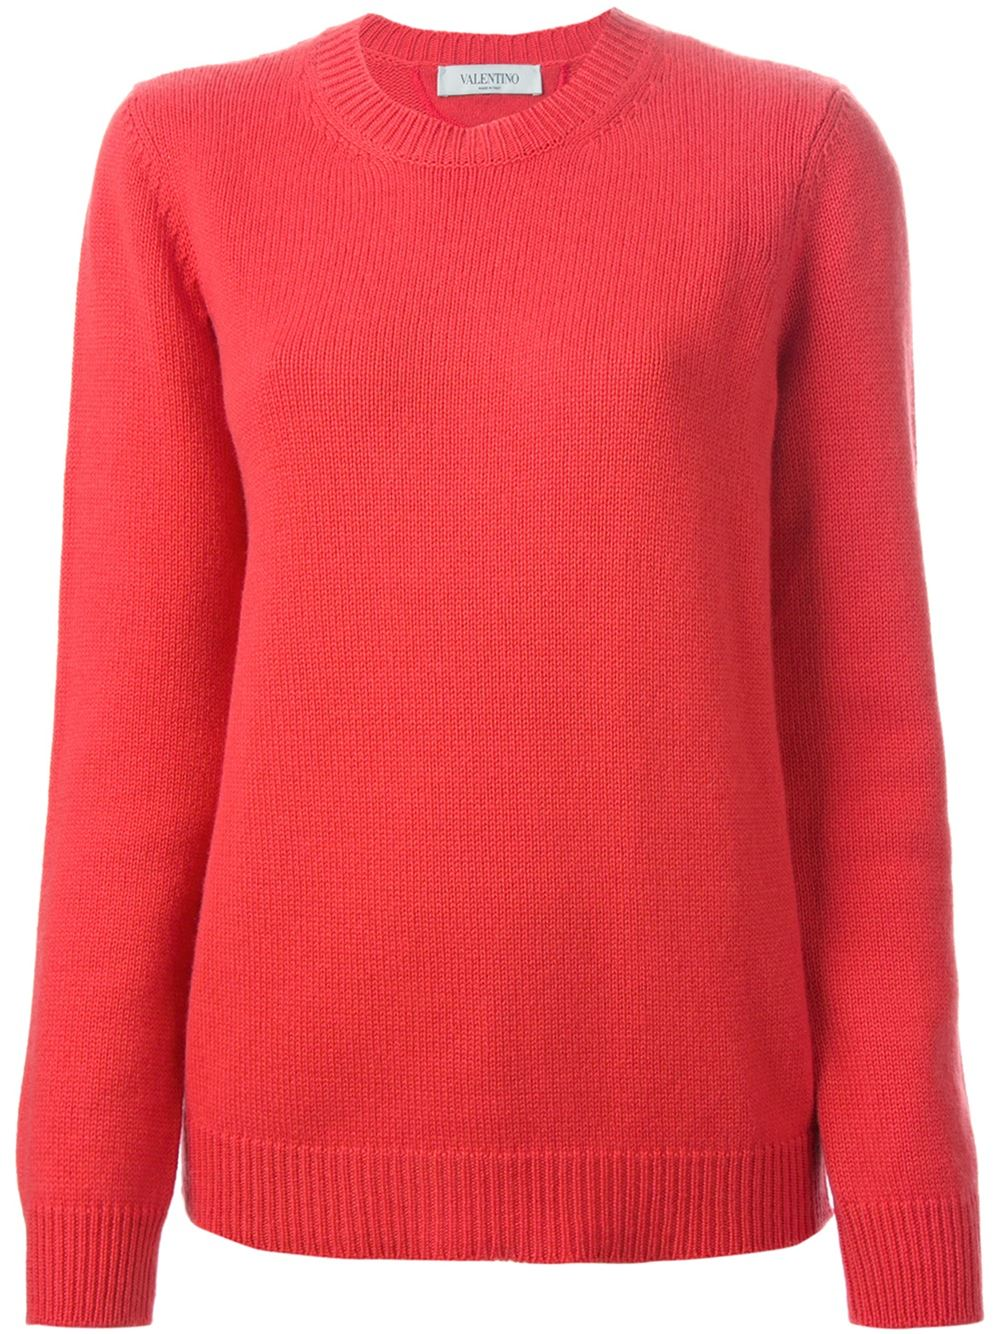 Orange cashmere round neck sweater from Valentino